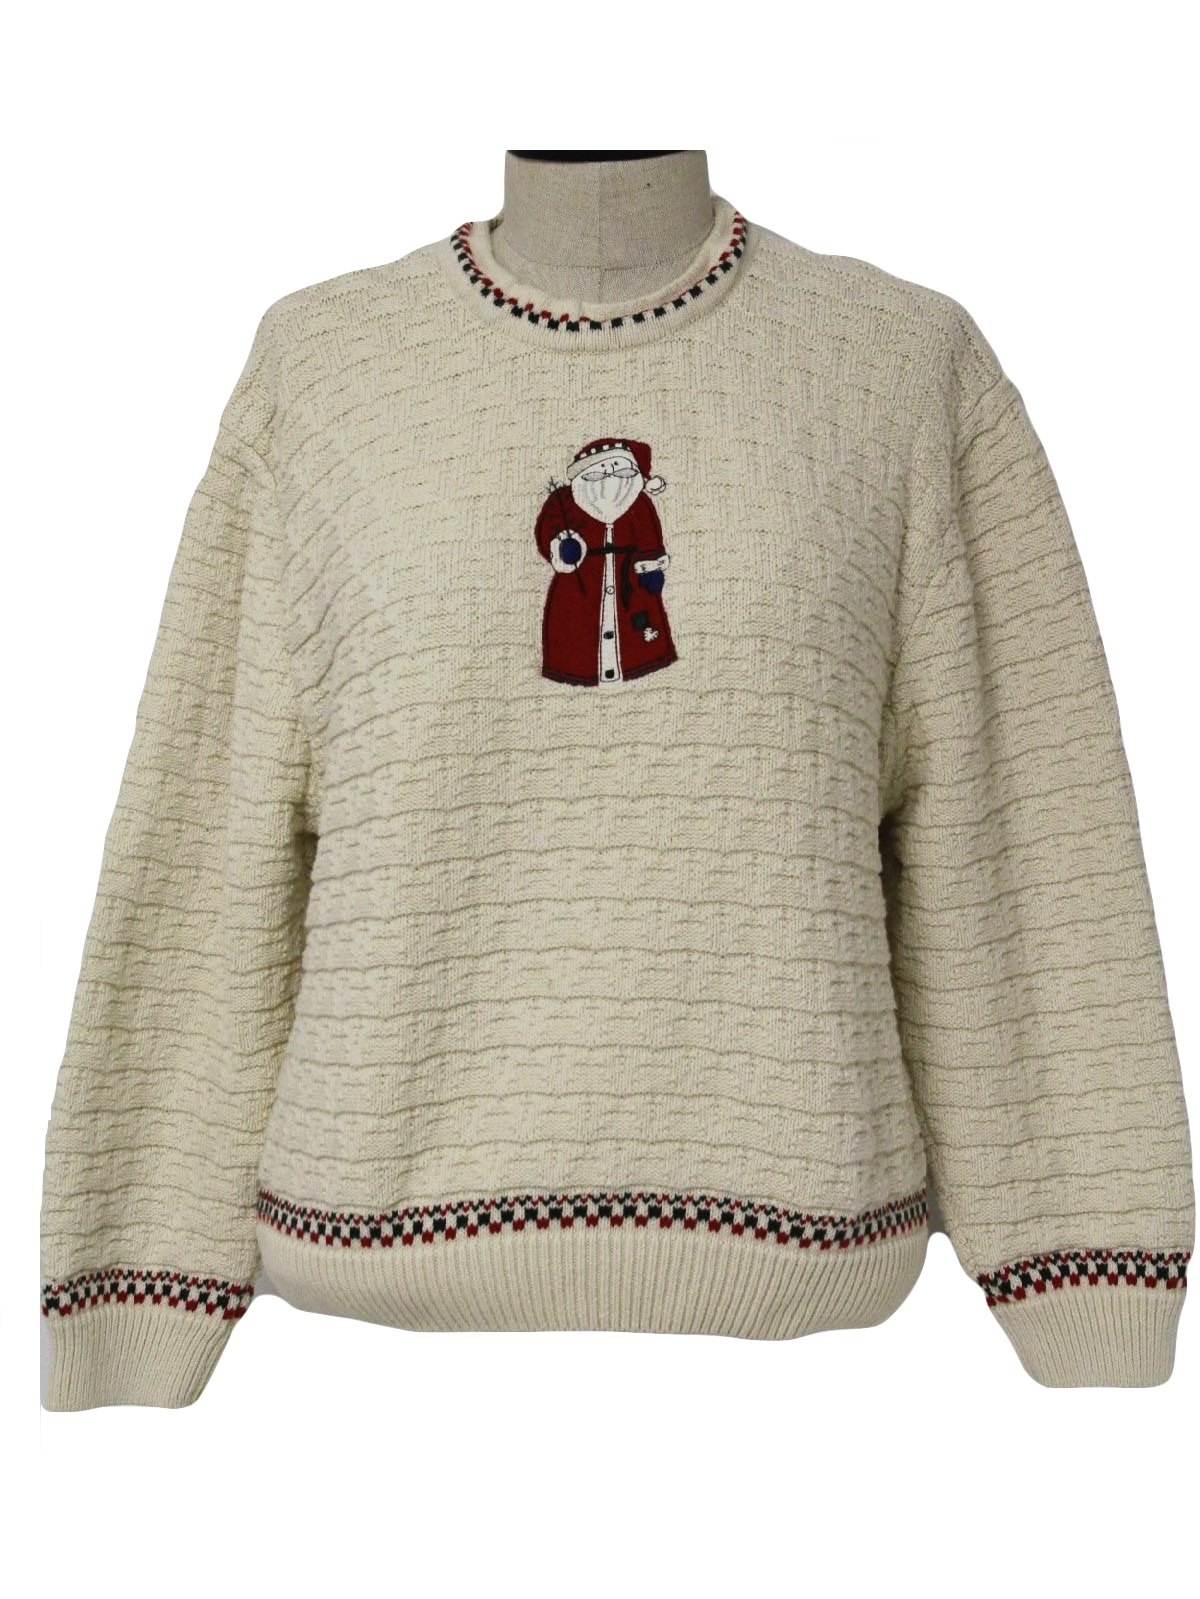 Mens Ugly Christmas Sweater.Cabelas Mens Ugly Christmas Sweater